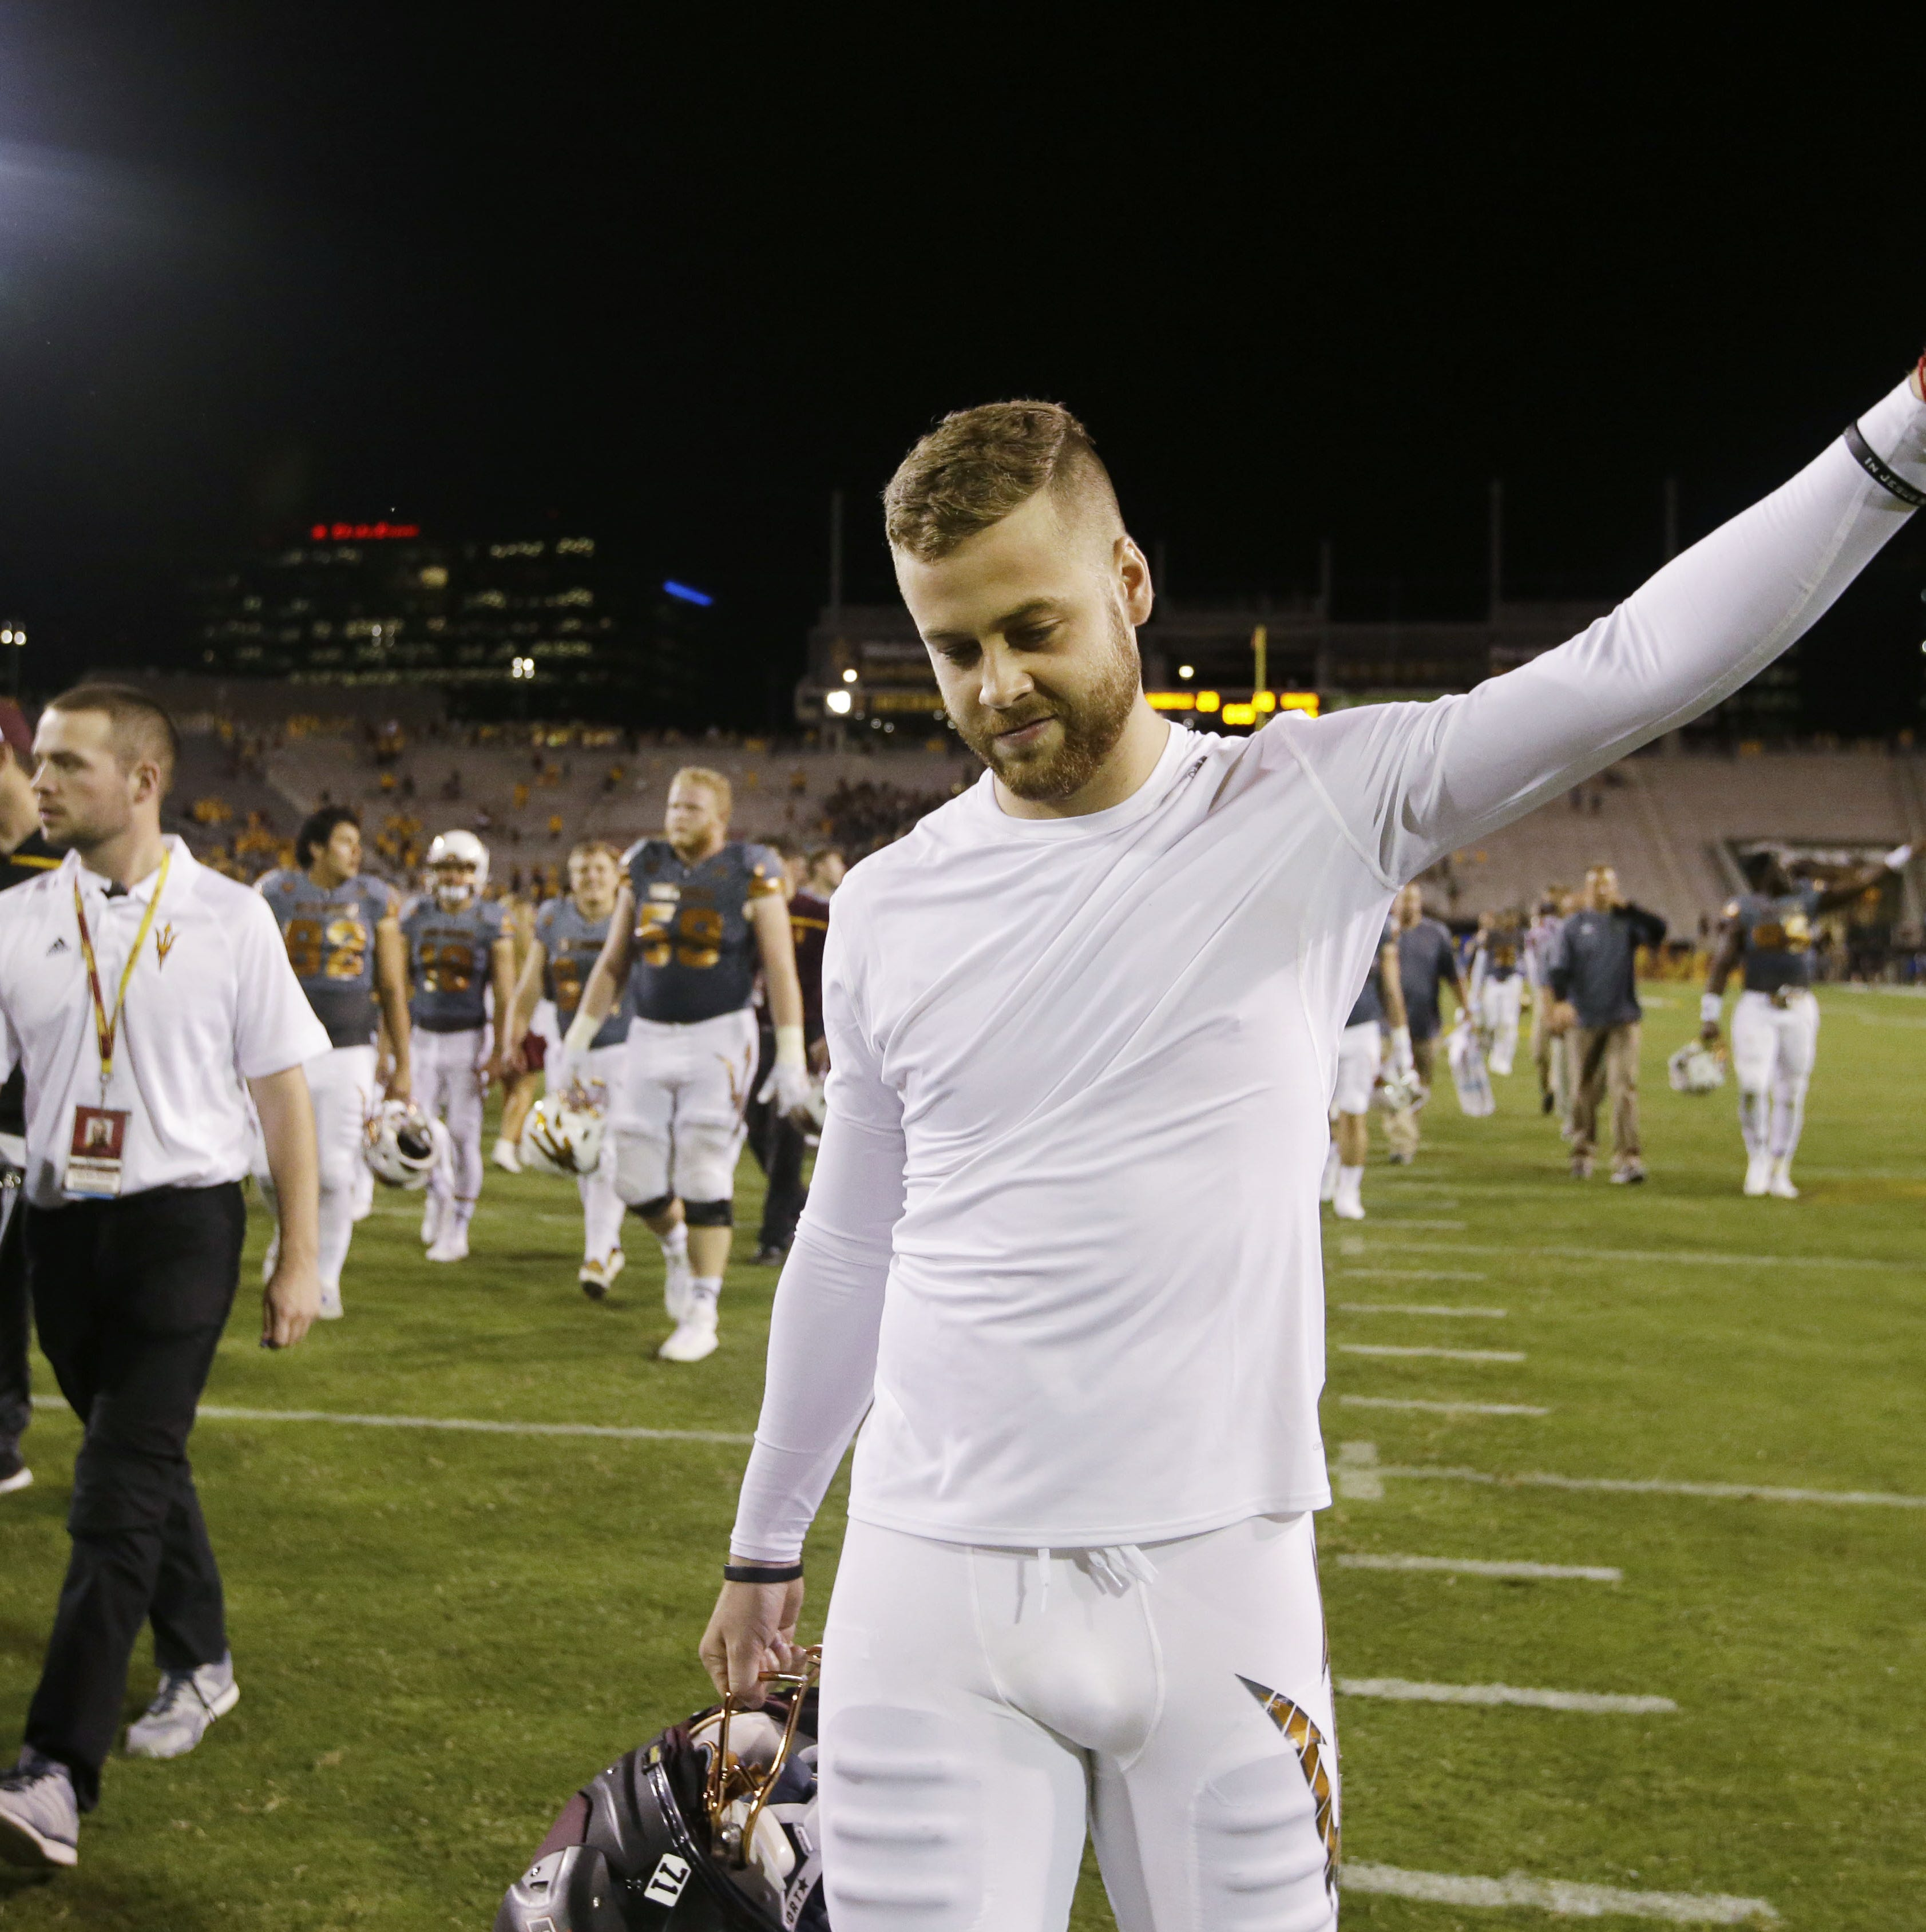 Zane Gonzalez set kicking records with Arizona State, now he'll try with the Arizona Cardinals